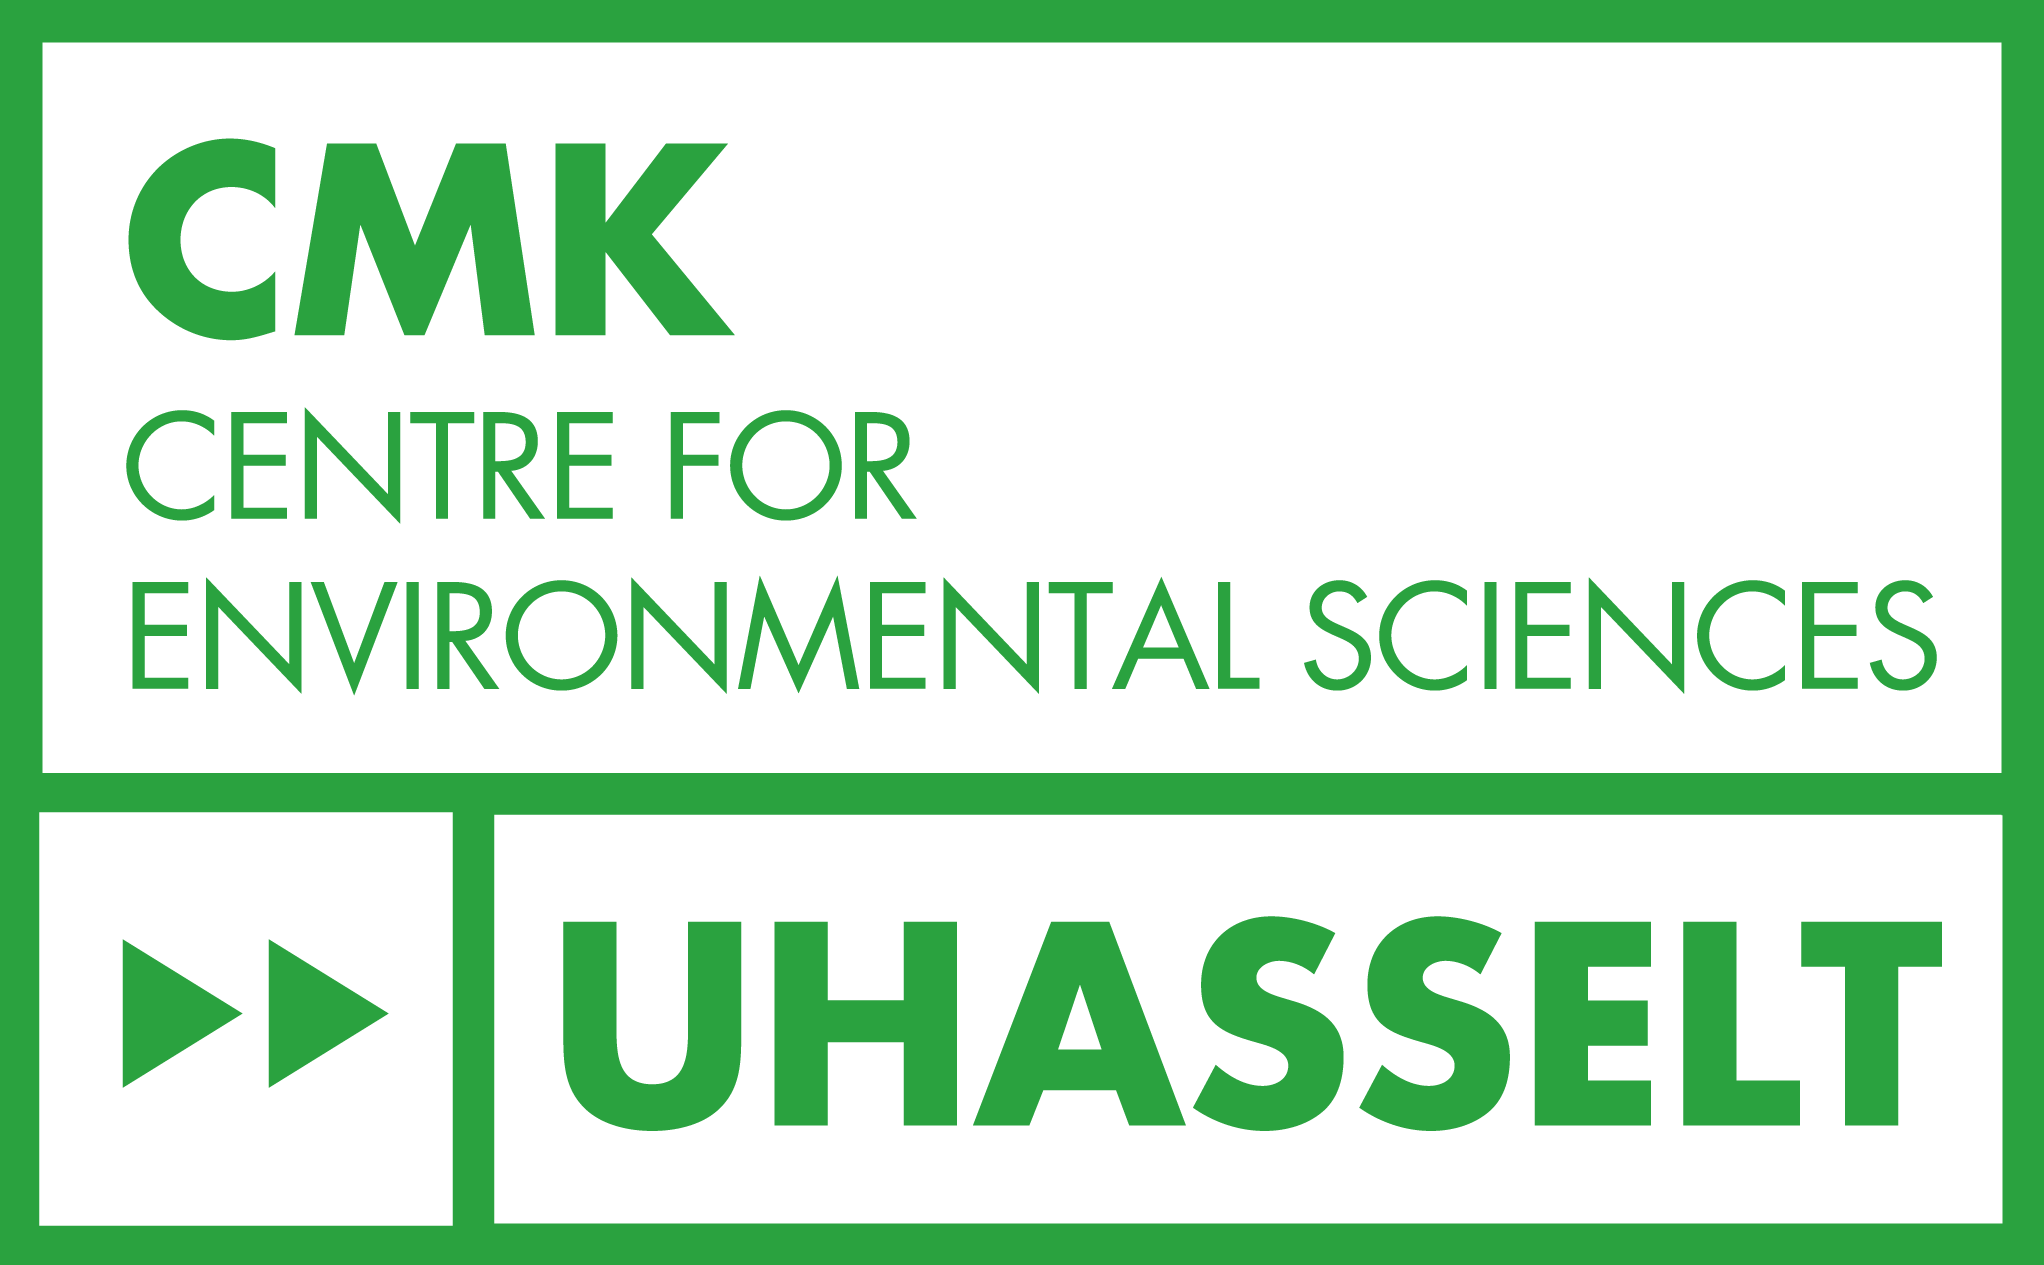 Hasselt University, Centre for Environmental Sciences